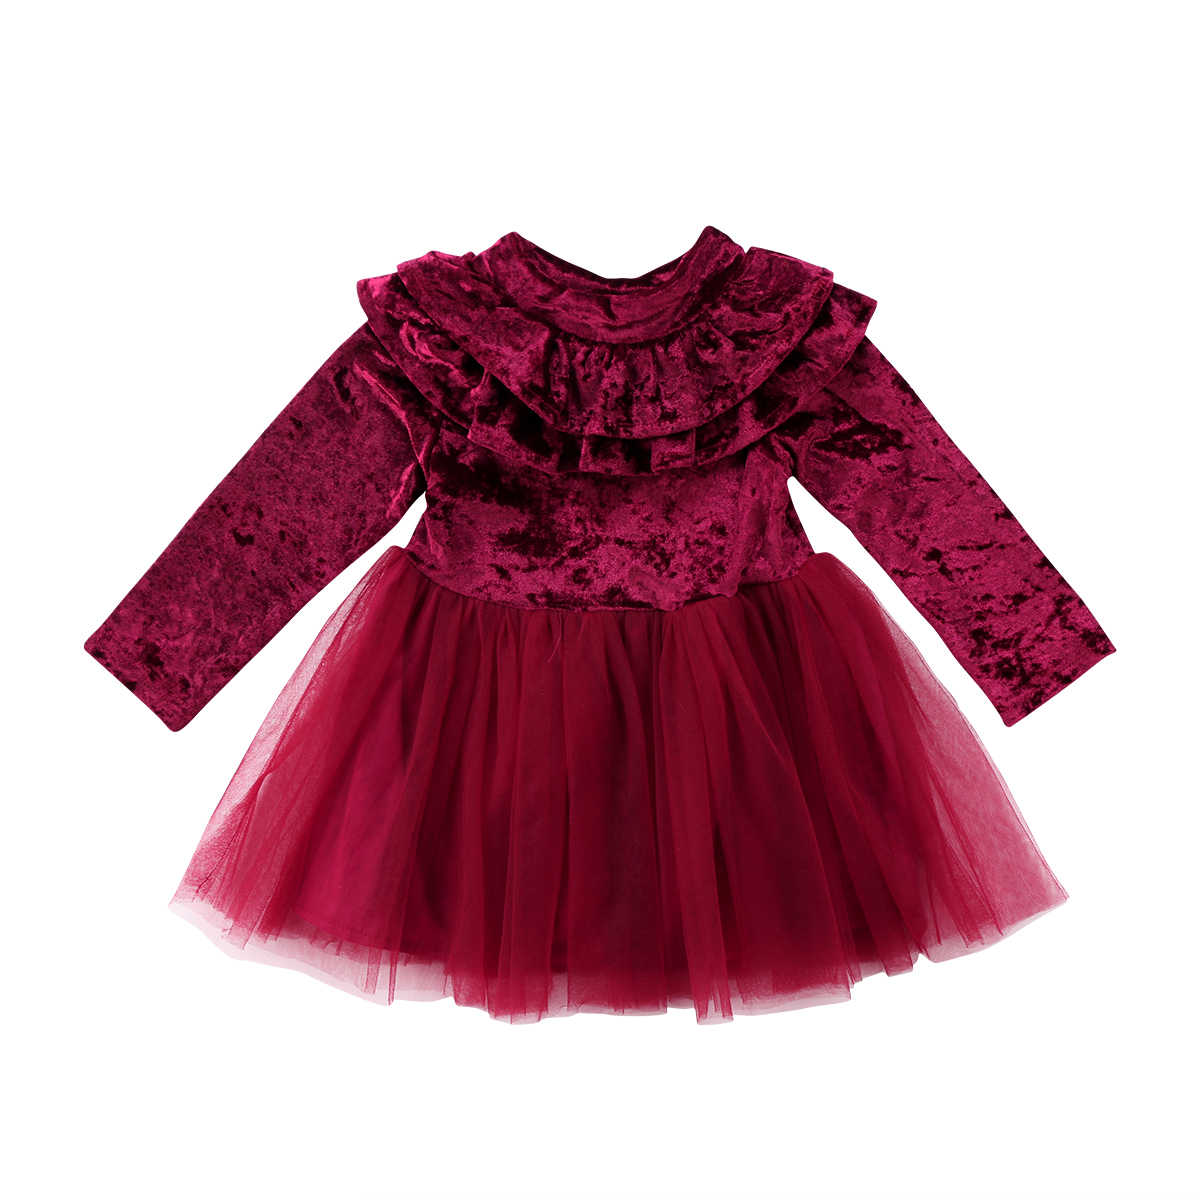 4175d2cdb Detail Feedback Questions about Fancy Princess Kids Baby Girl Dress ...